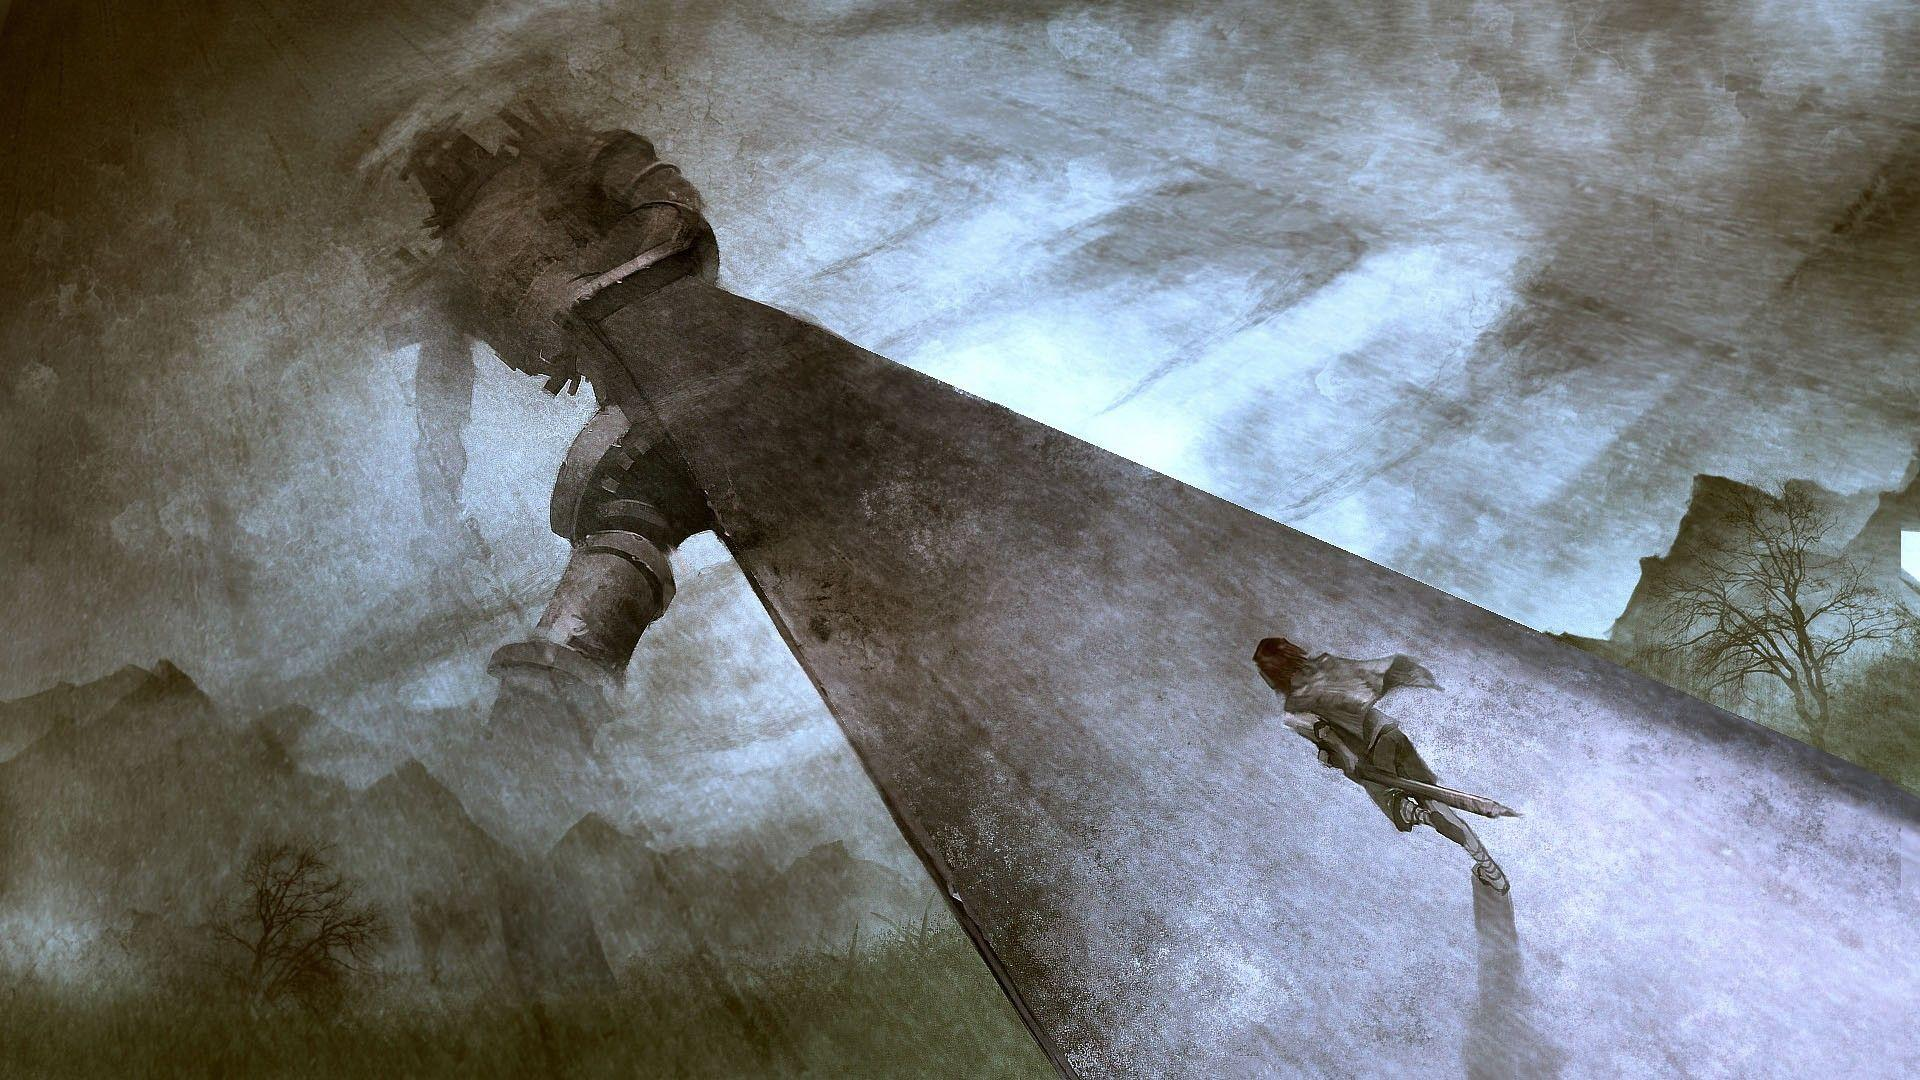 Wallpaper #14, wallpaper from Shadow of the Colossus ...